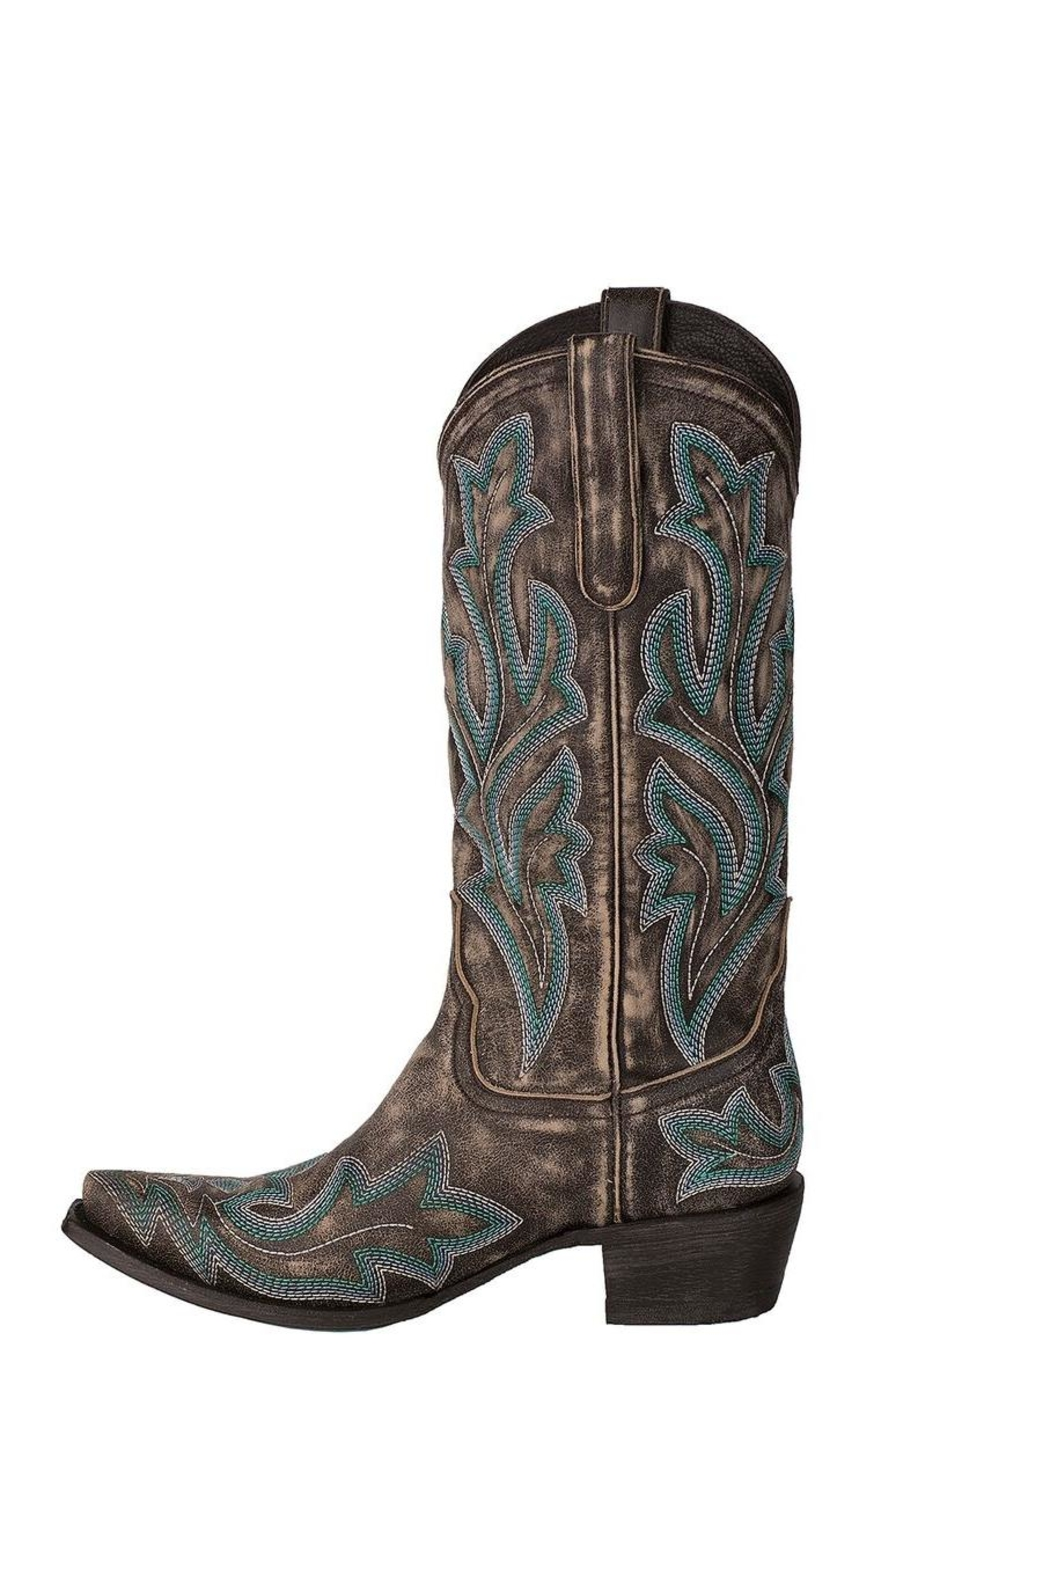 e27dd8d62b4 Lane Boots Boho Chic Boot from Saratoga by Laura M — Shoptiques